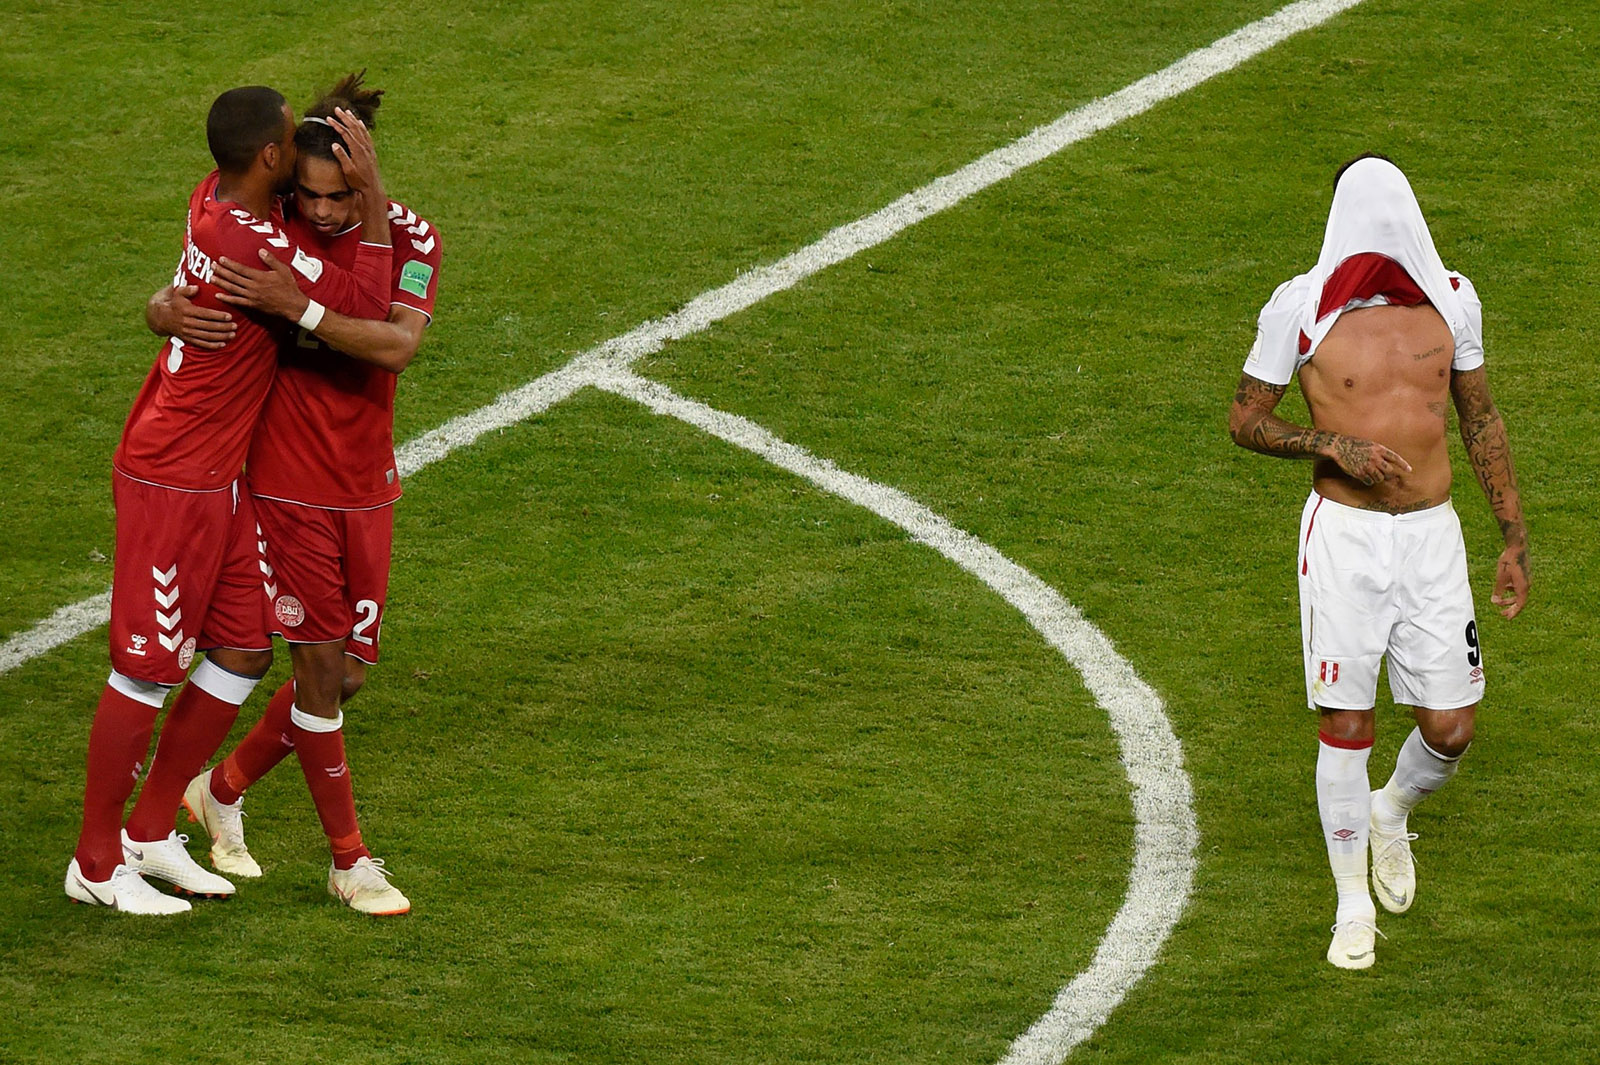 Danish players congratulating each other and Peru's star forward Paolo Guerrero covering his face with his shirt as Peru lost 0-1 to Denmark in Saransk, Russia, June 16, 2018